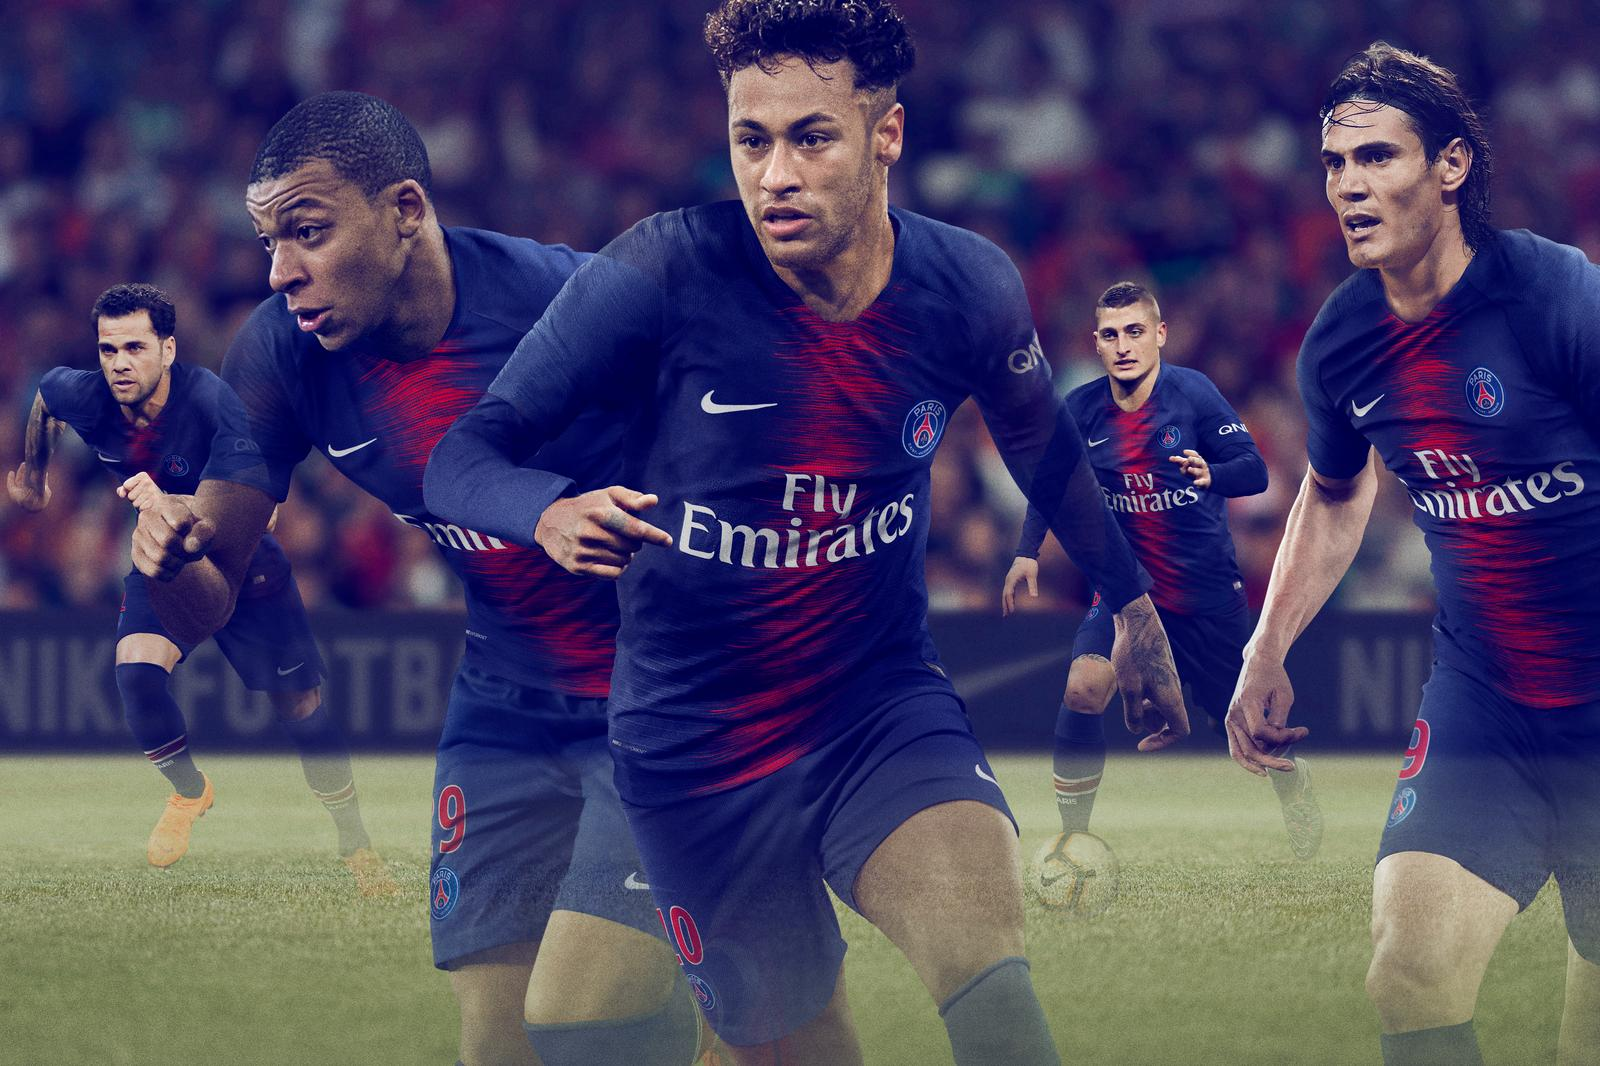 psg-18-19-home-kit-1.jpg